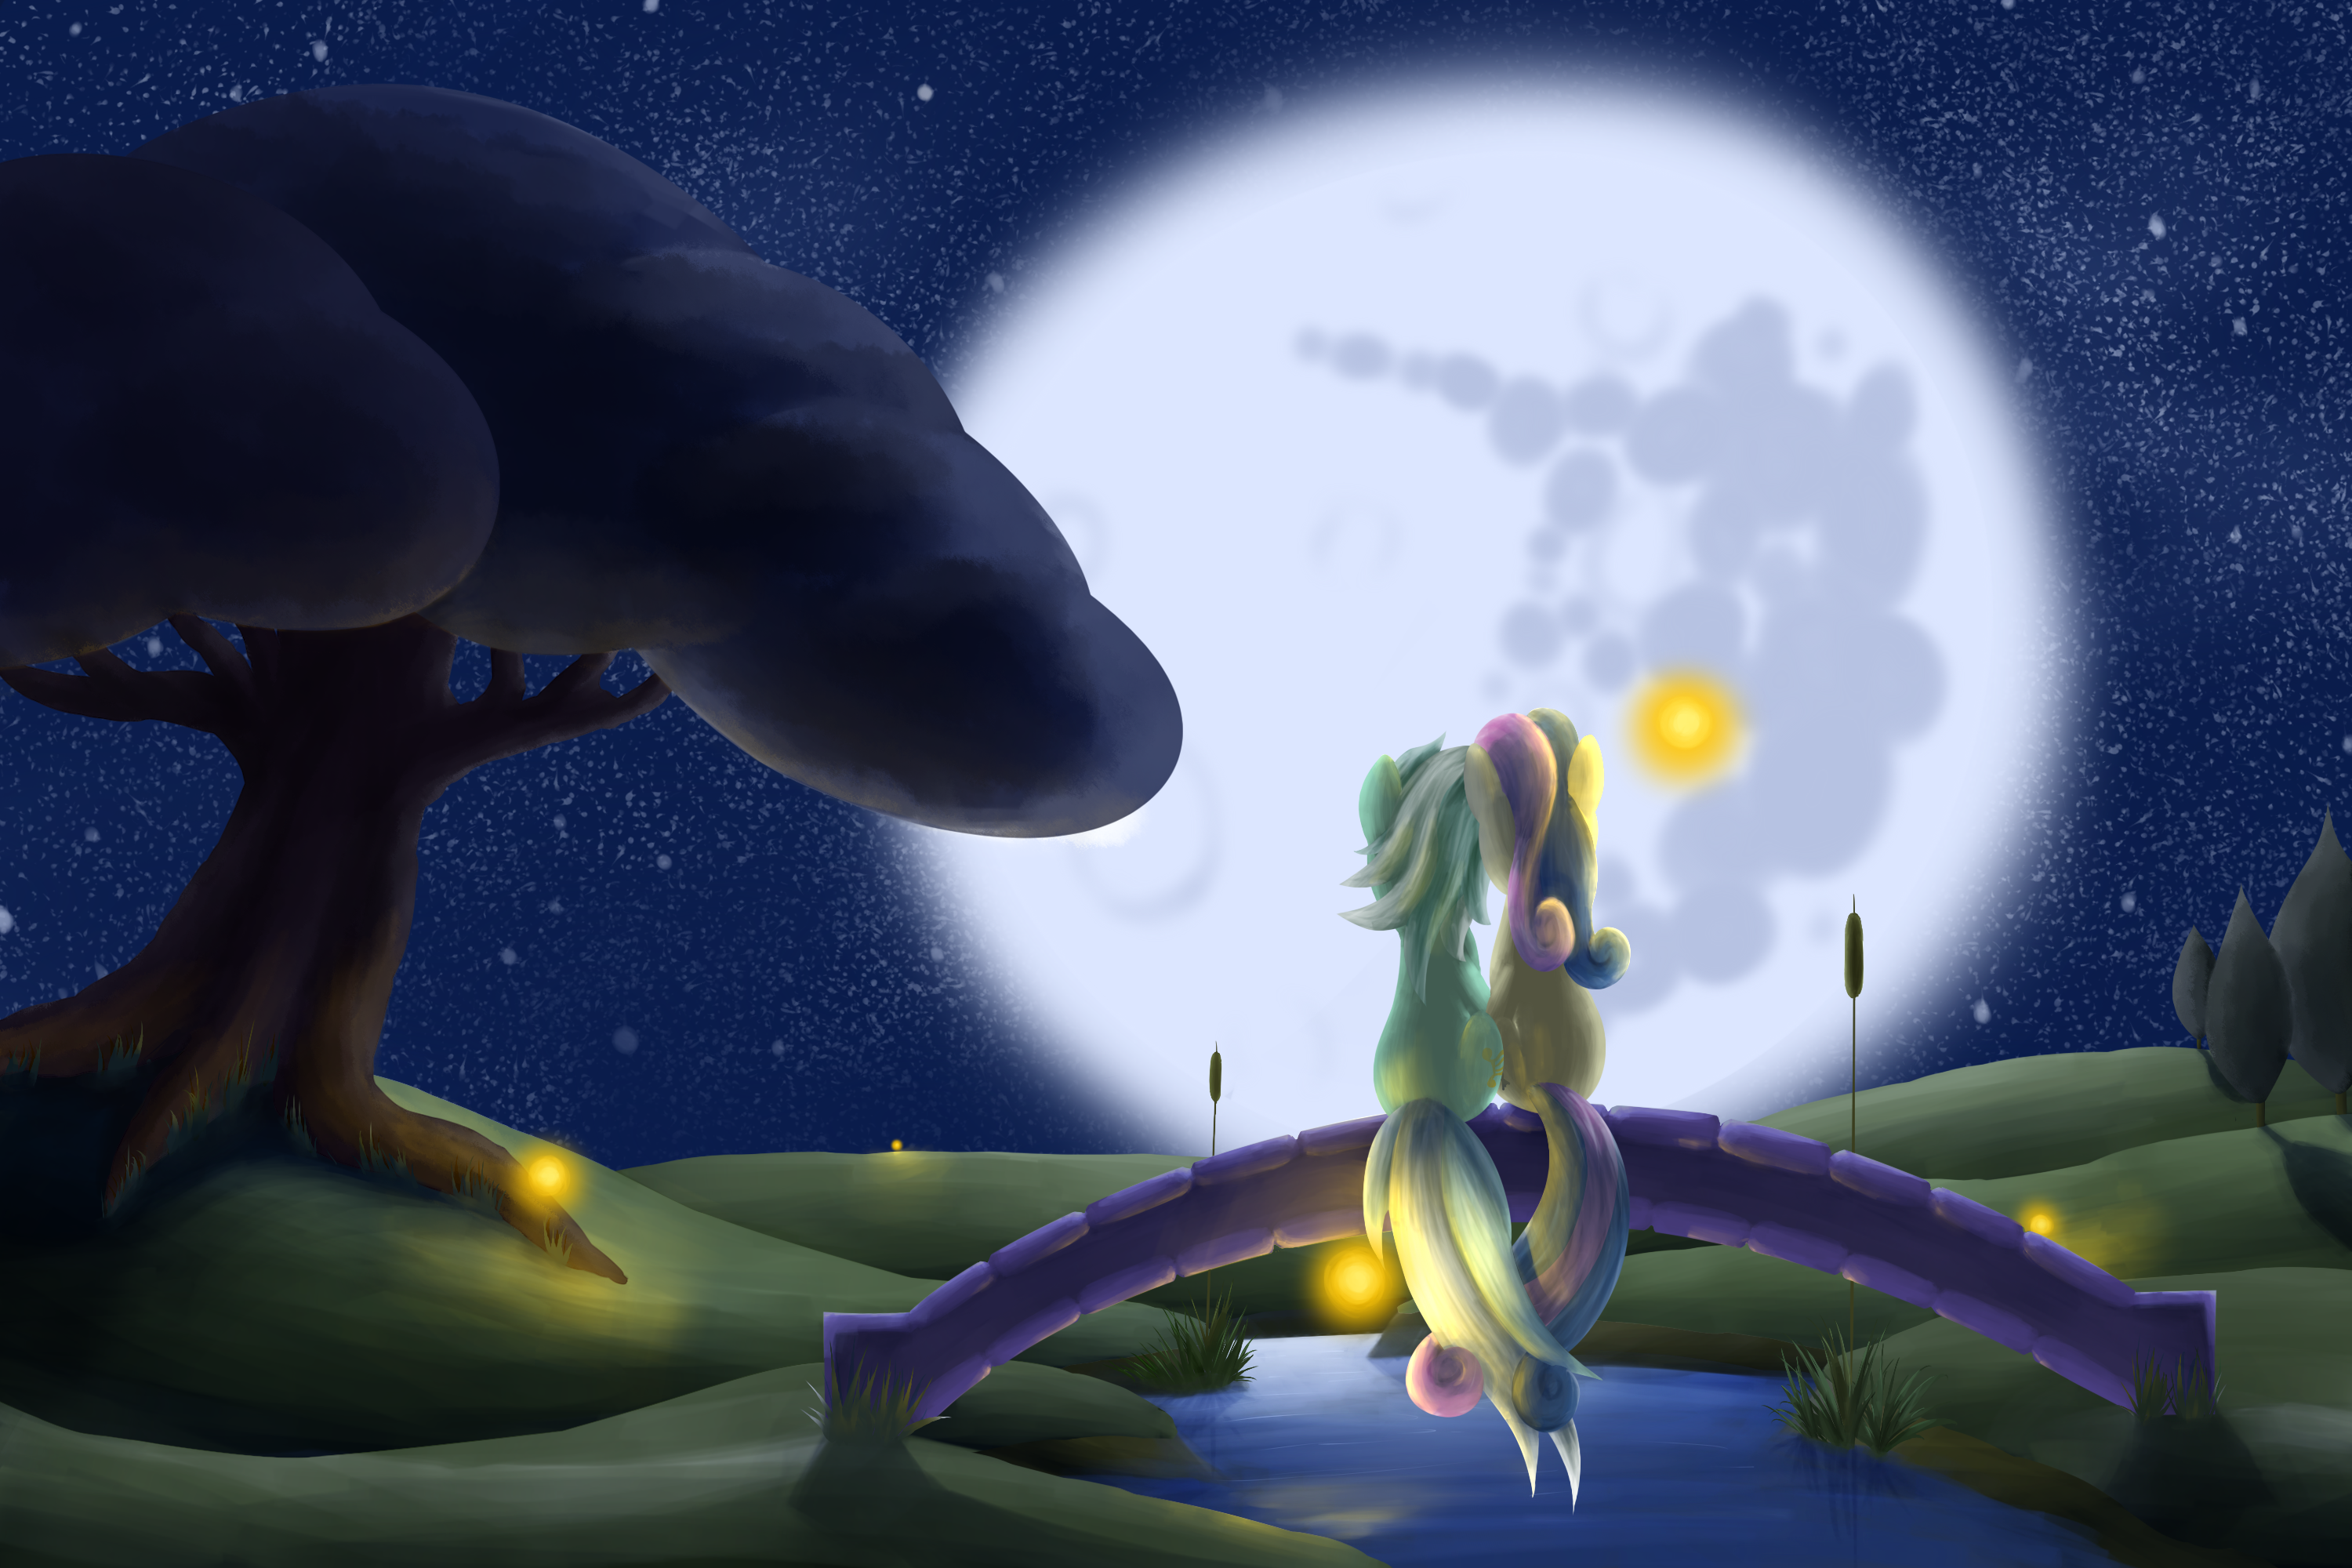 Moonlit Evening by Ilonis